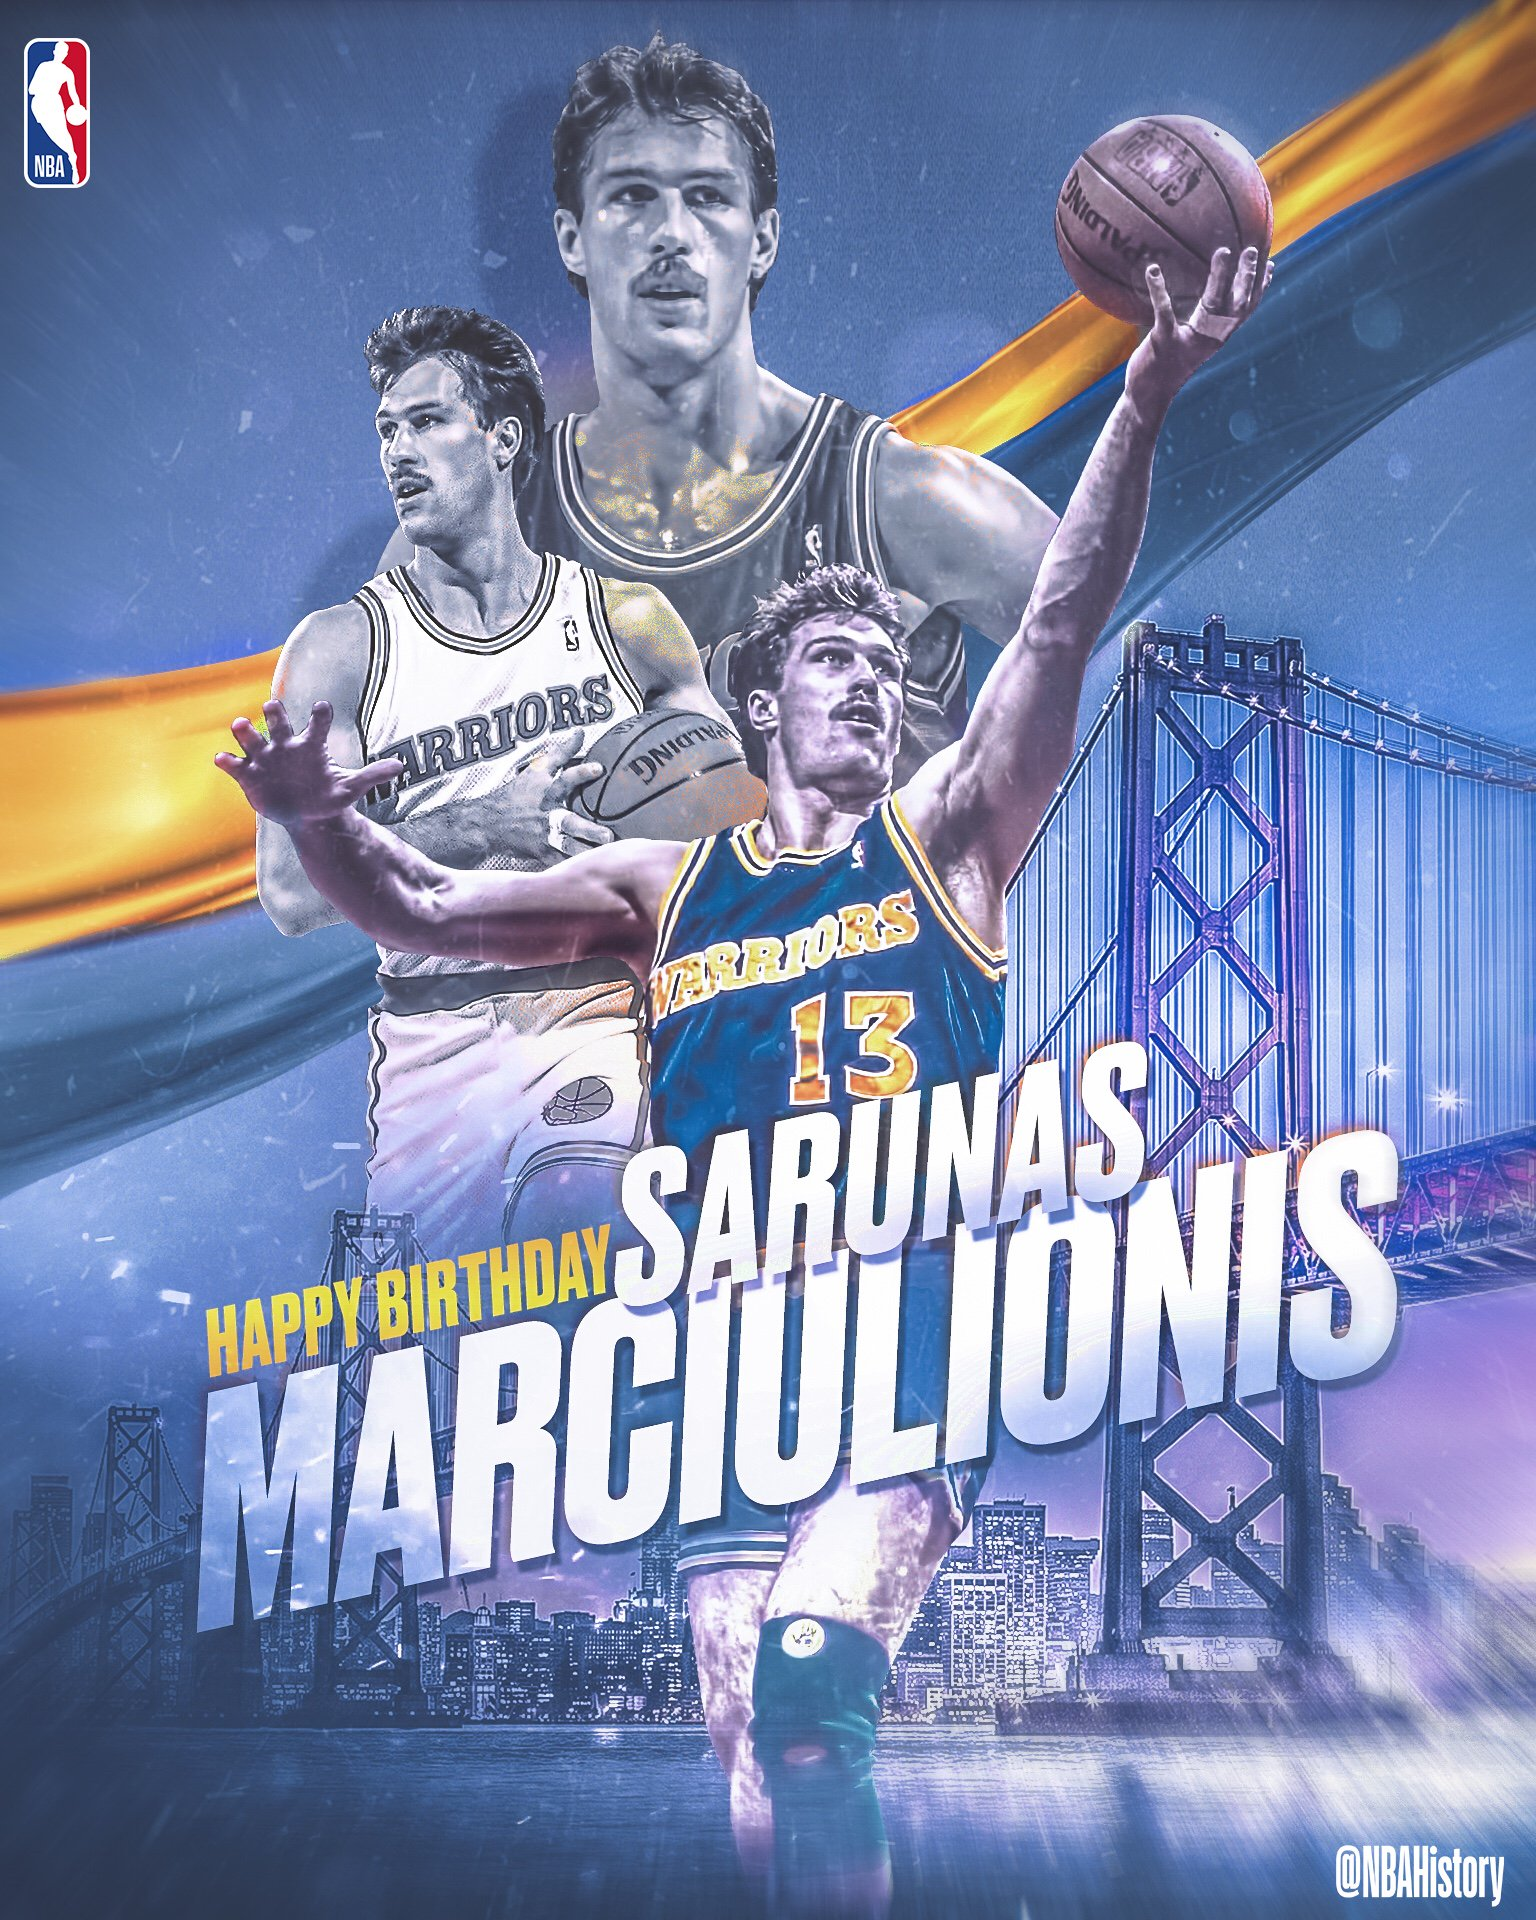 Happy 54th Birthday to Lithuanian legend and Hall of Famer, Sarunas Marciulionis!